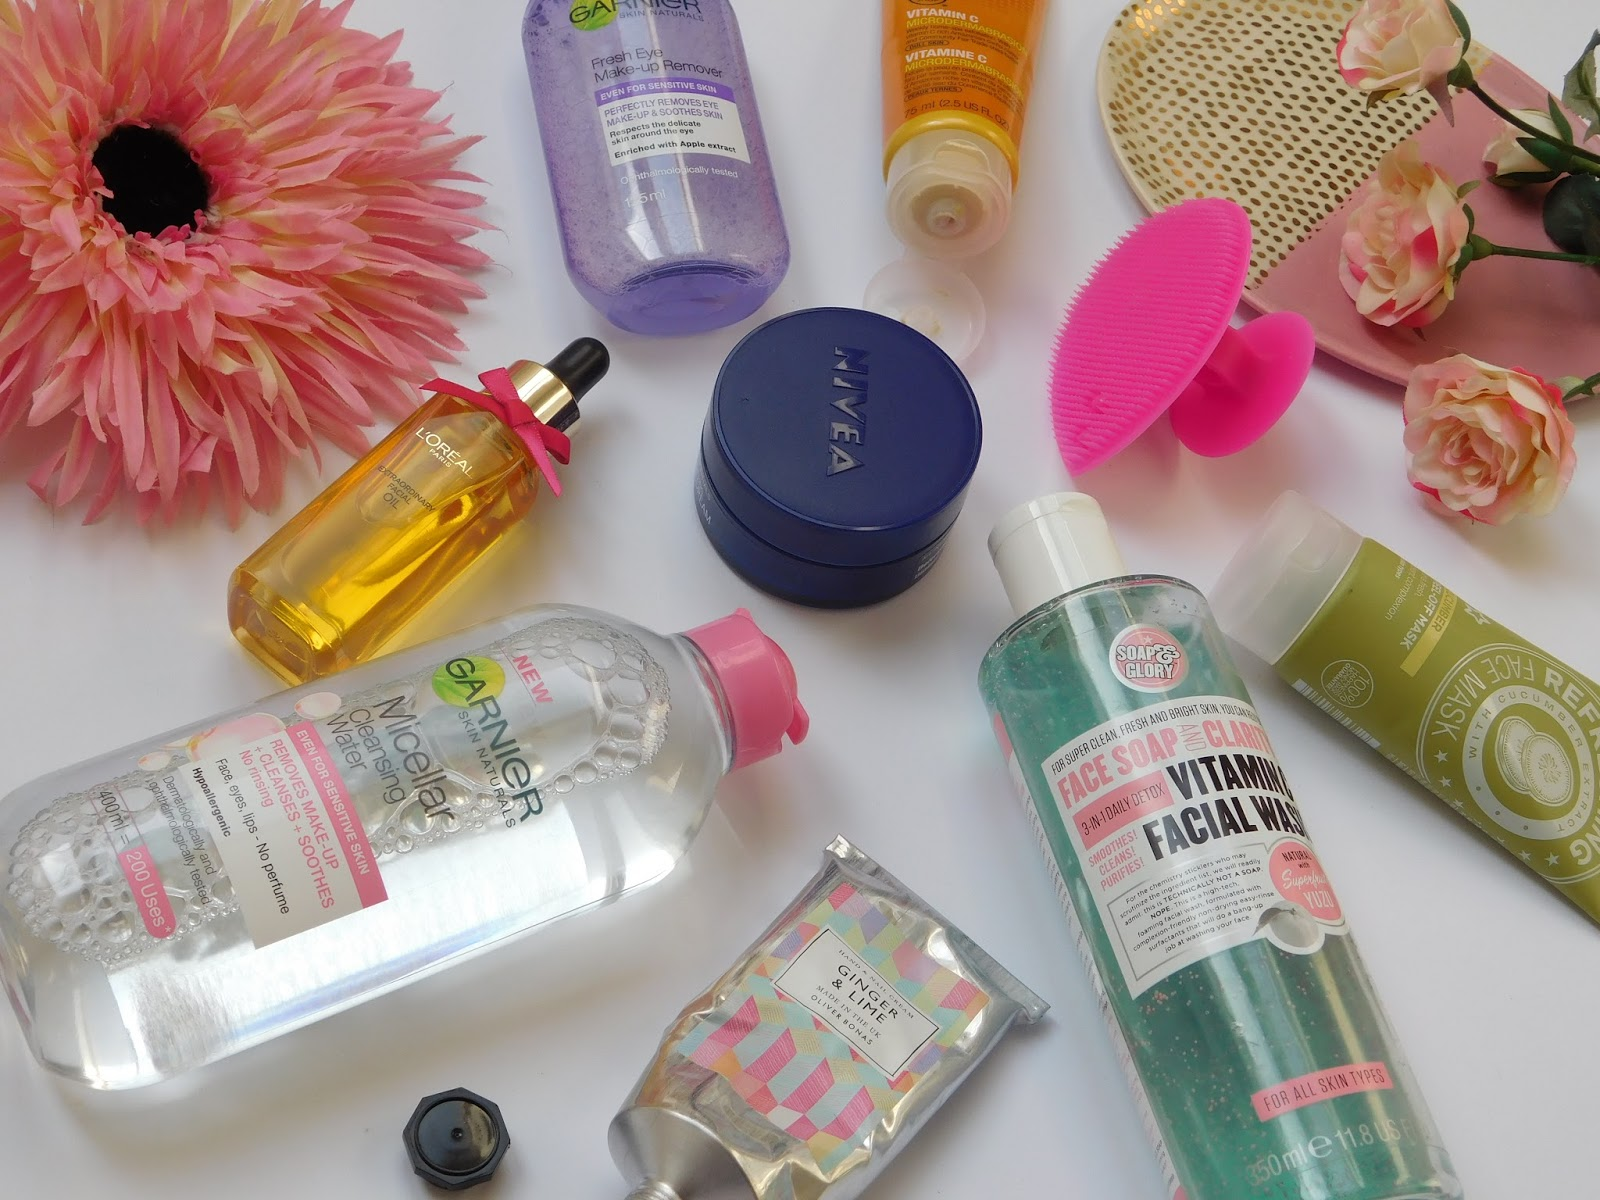 My night-time routine products